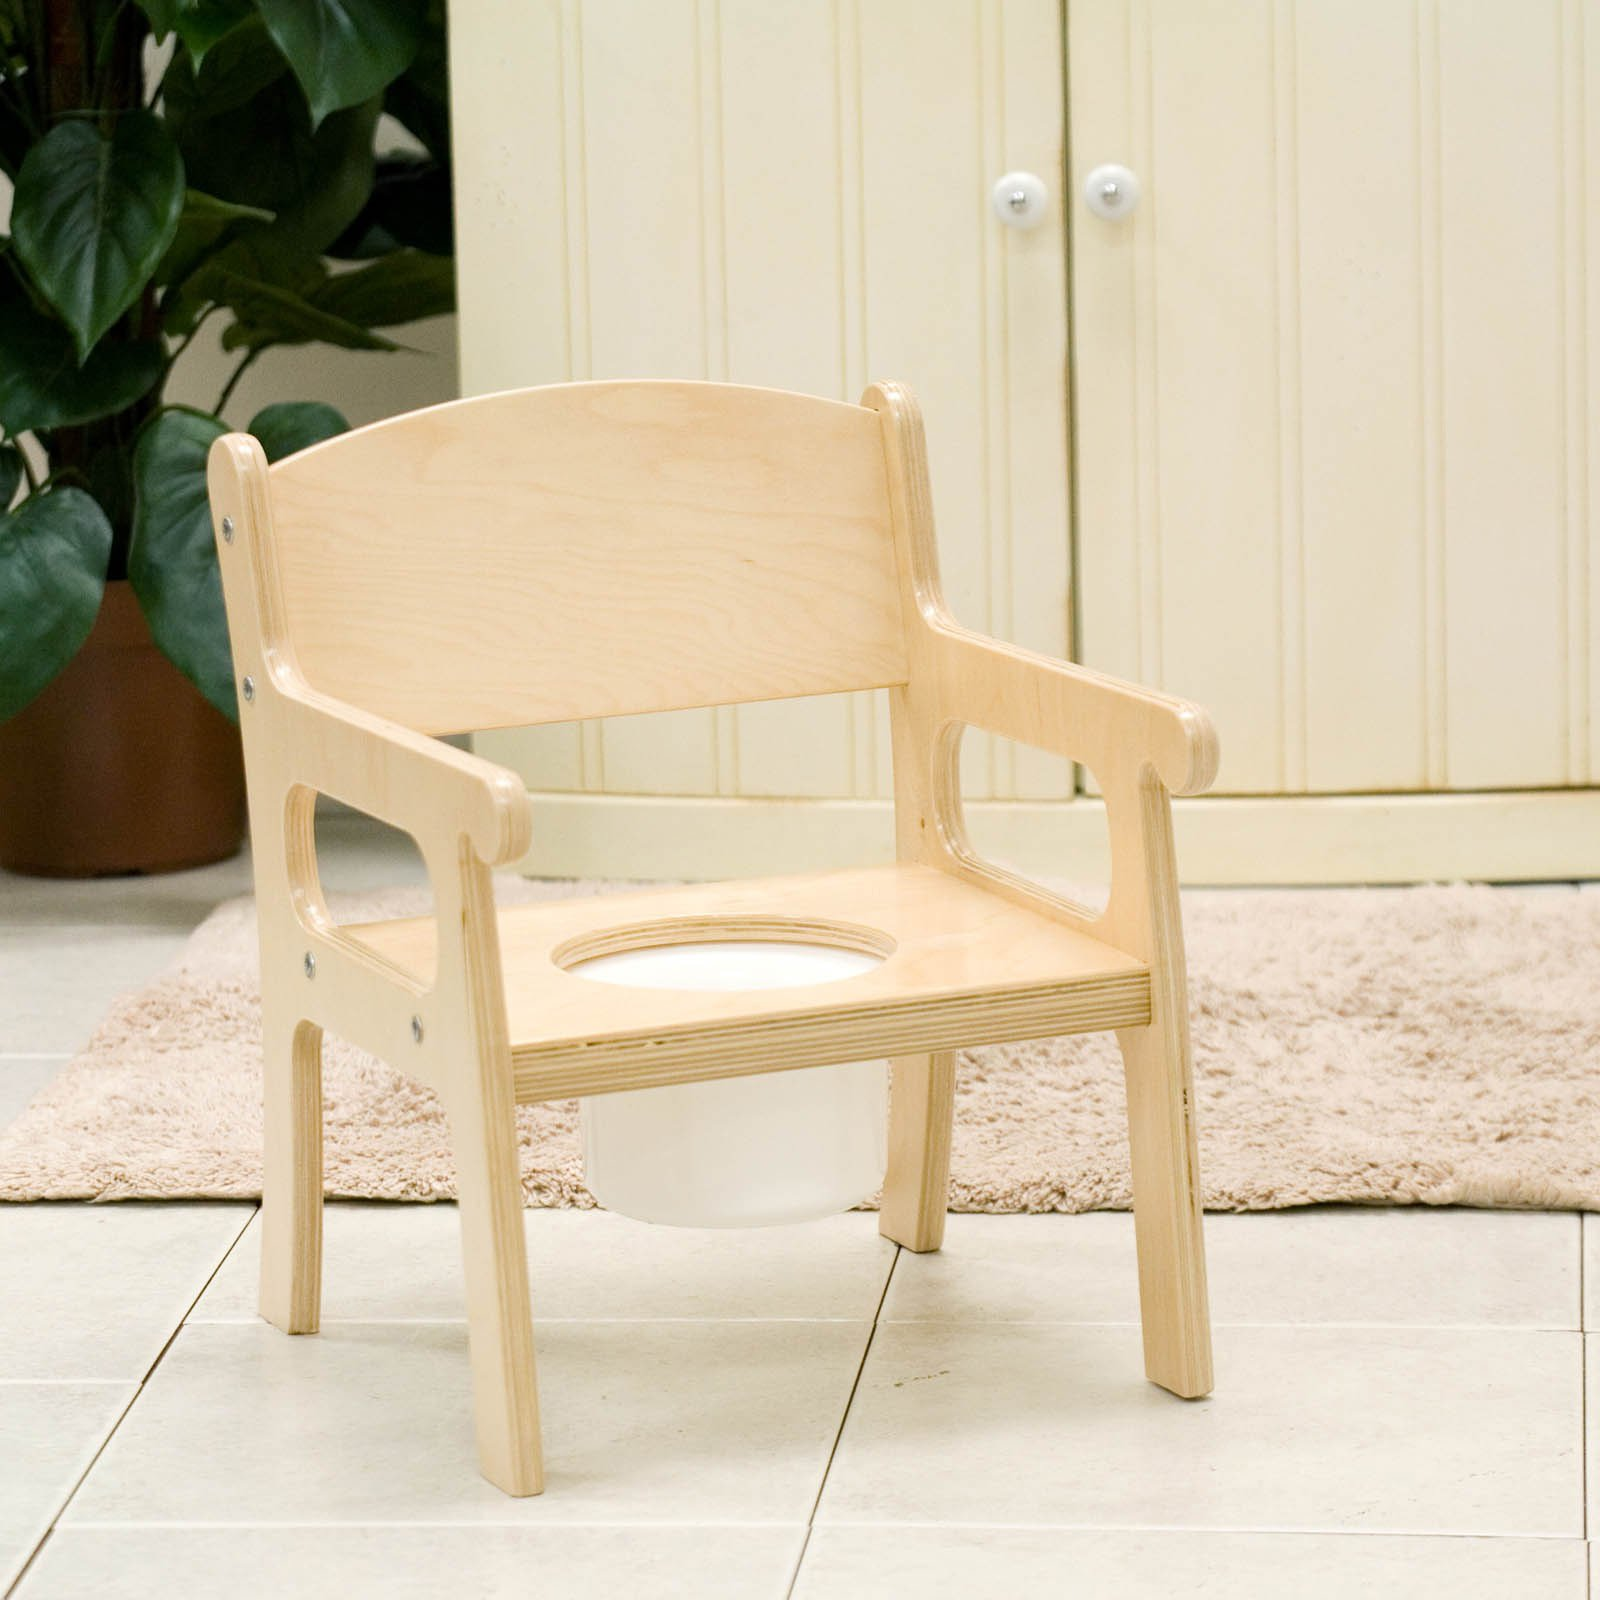 Little Colorado Handcrafted Potty Chair by Little Colorado